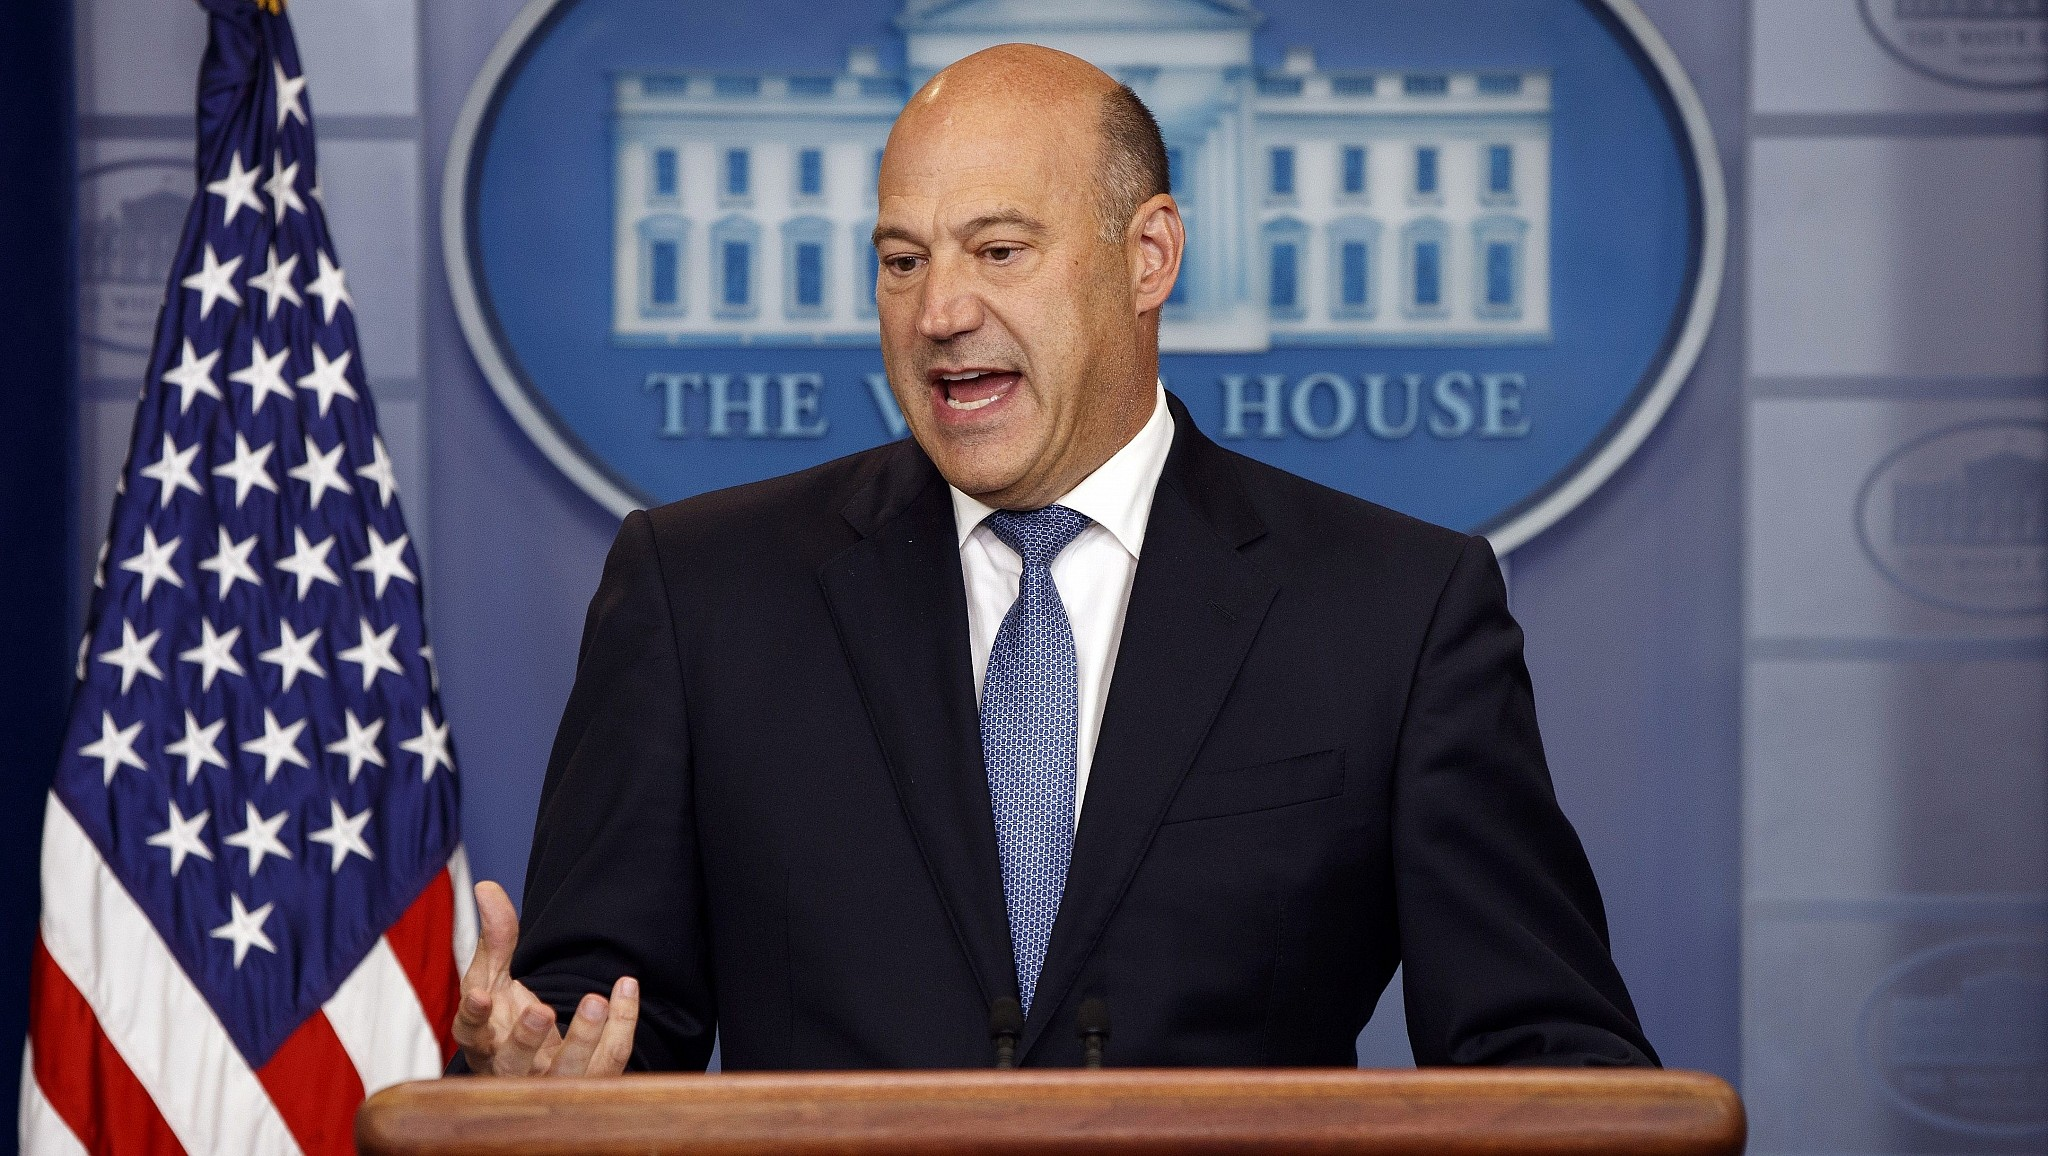 White House chief economic adviser Gary Cohn speaks during the daily press briefing Thursday Sept. 28 2017 in Washington